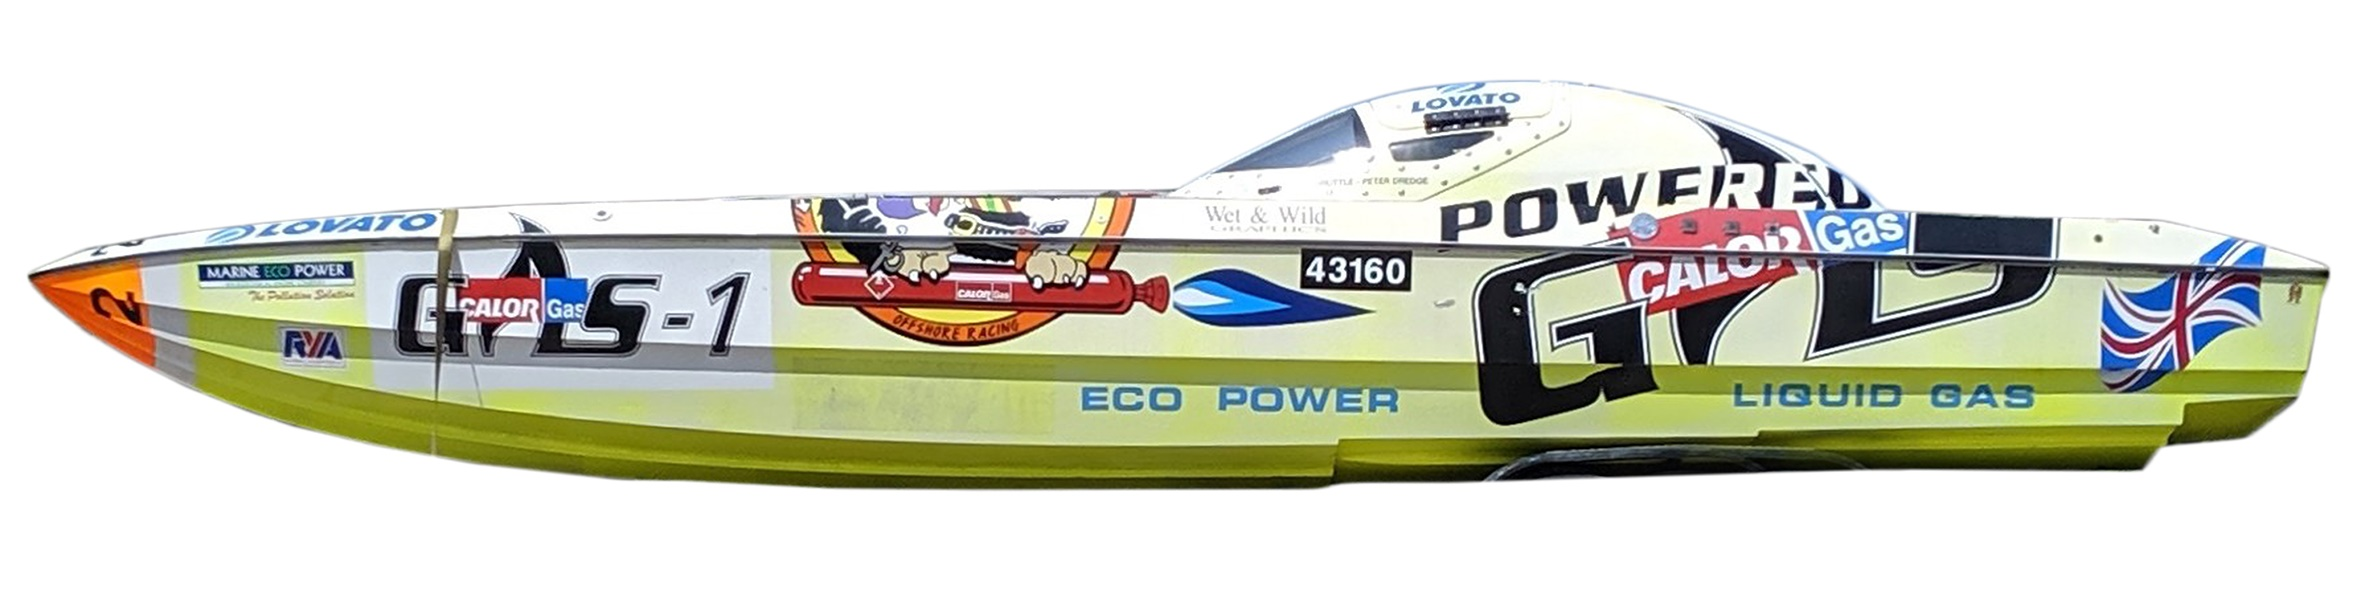 A Skater 28ft 'Cultured Vulture' powerboat